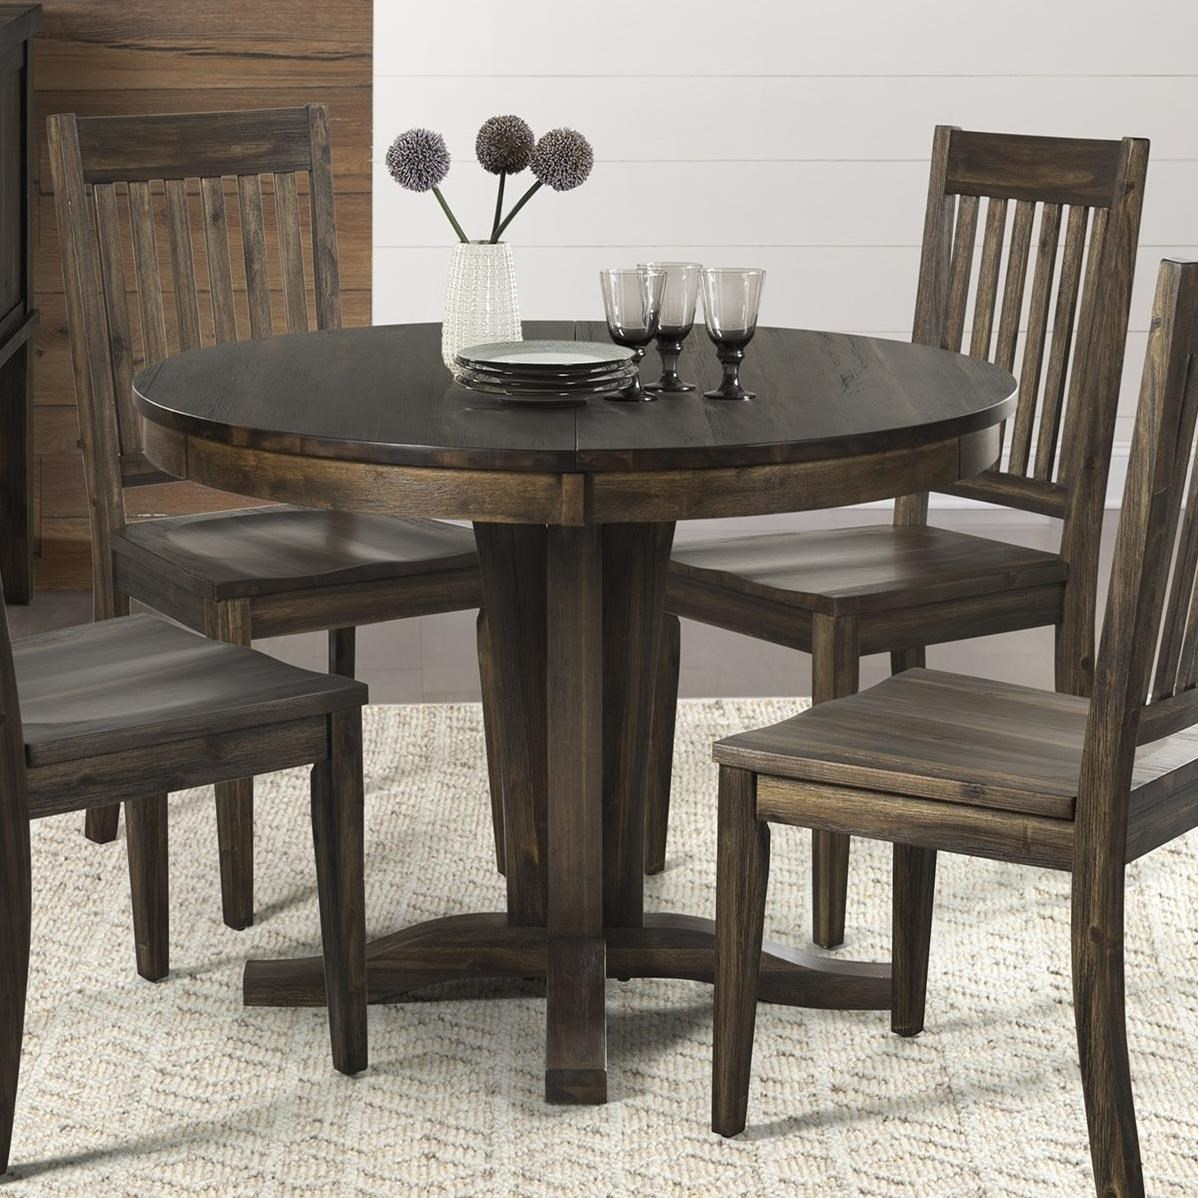 Huron Round Pedestal Table by A-A at Walker's Furniture